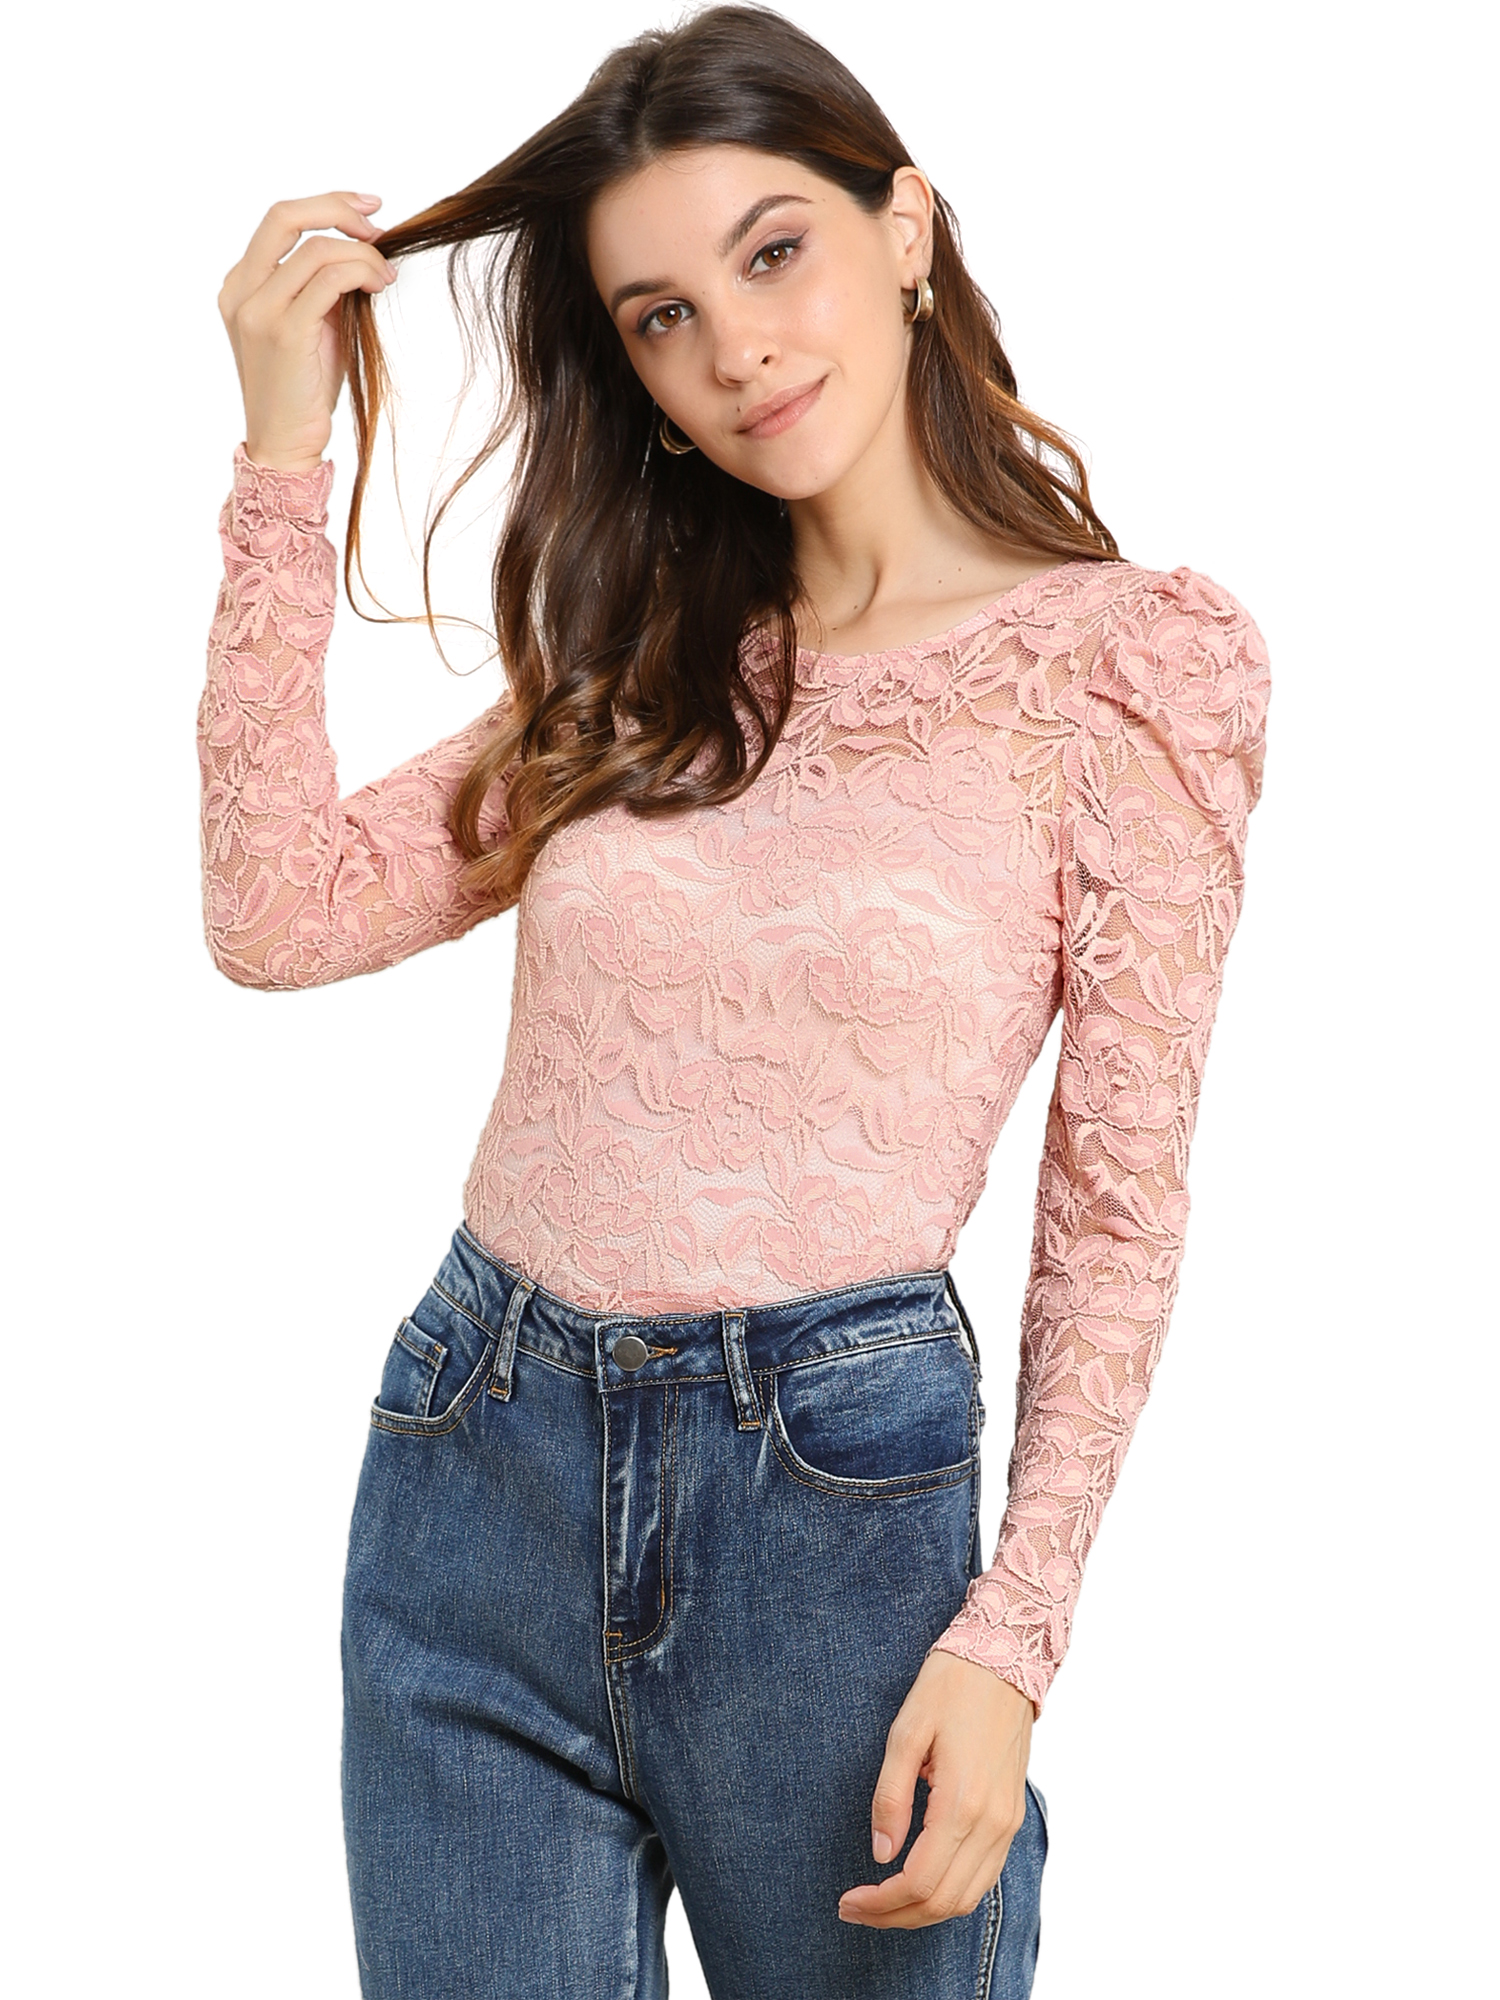 Allegra K Women's Puff Long Sleeve Semi Sheer Floral Lace Top Pink S